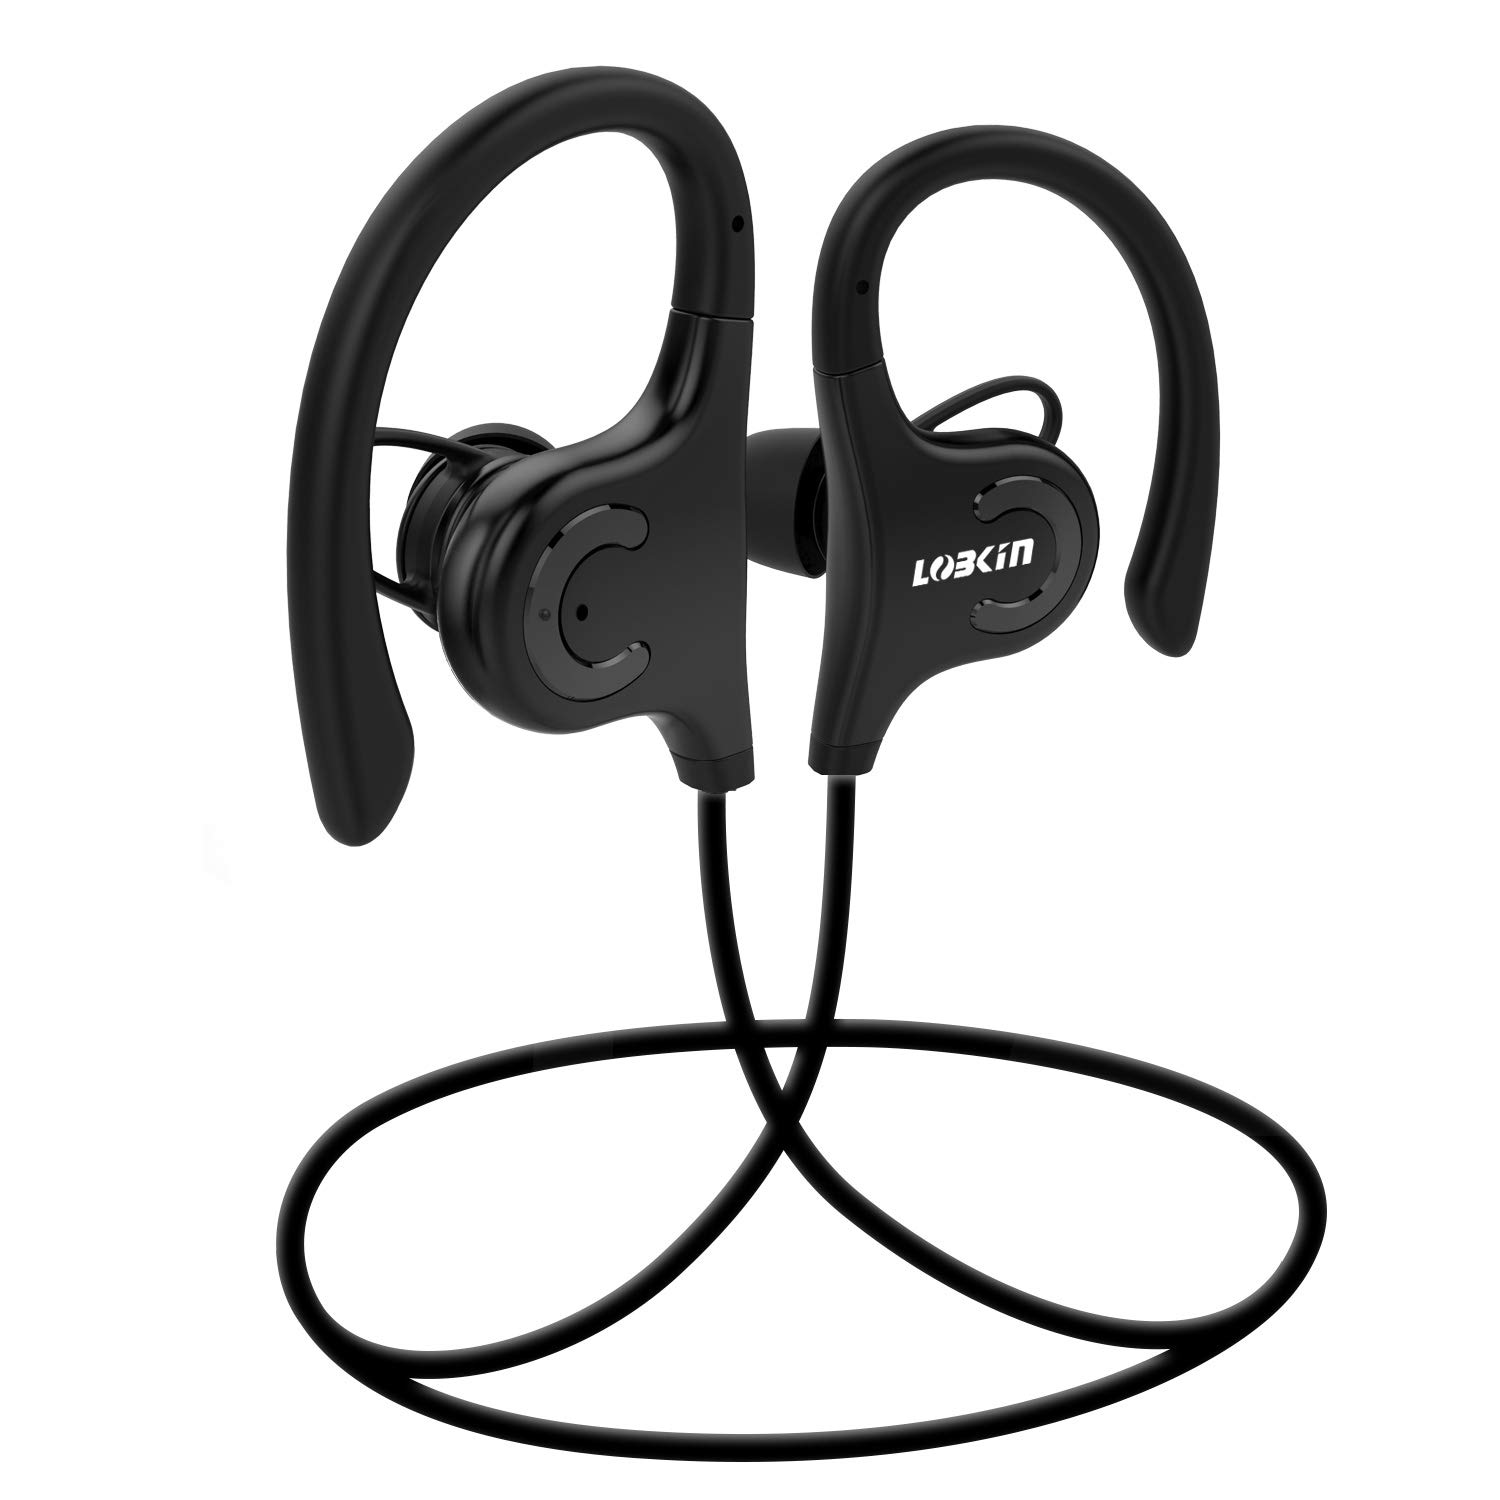 Lobkin Bluetooth earphones,Sport Stereo Headset with mic,Bluetooth headphones in ear, Noise Cancelling Neckband IPX5 Sweatproof Earphones -Black (Black)